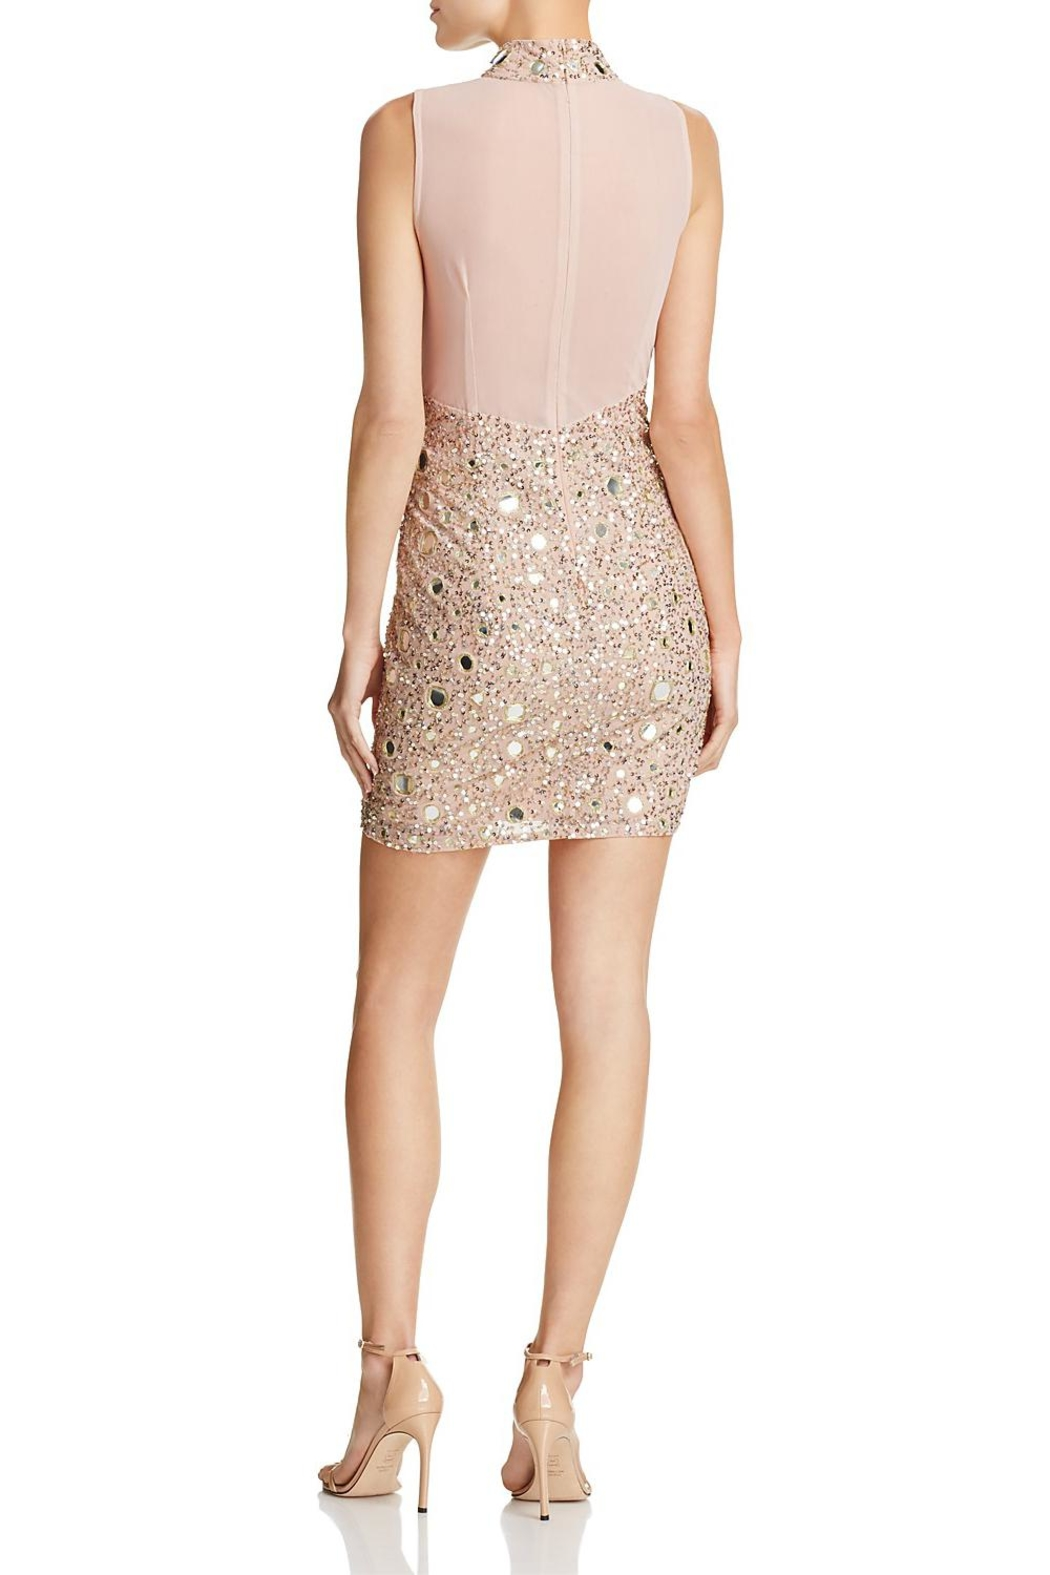 French Connection Sequined/mirrored Mini Dress - Front Full Image